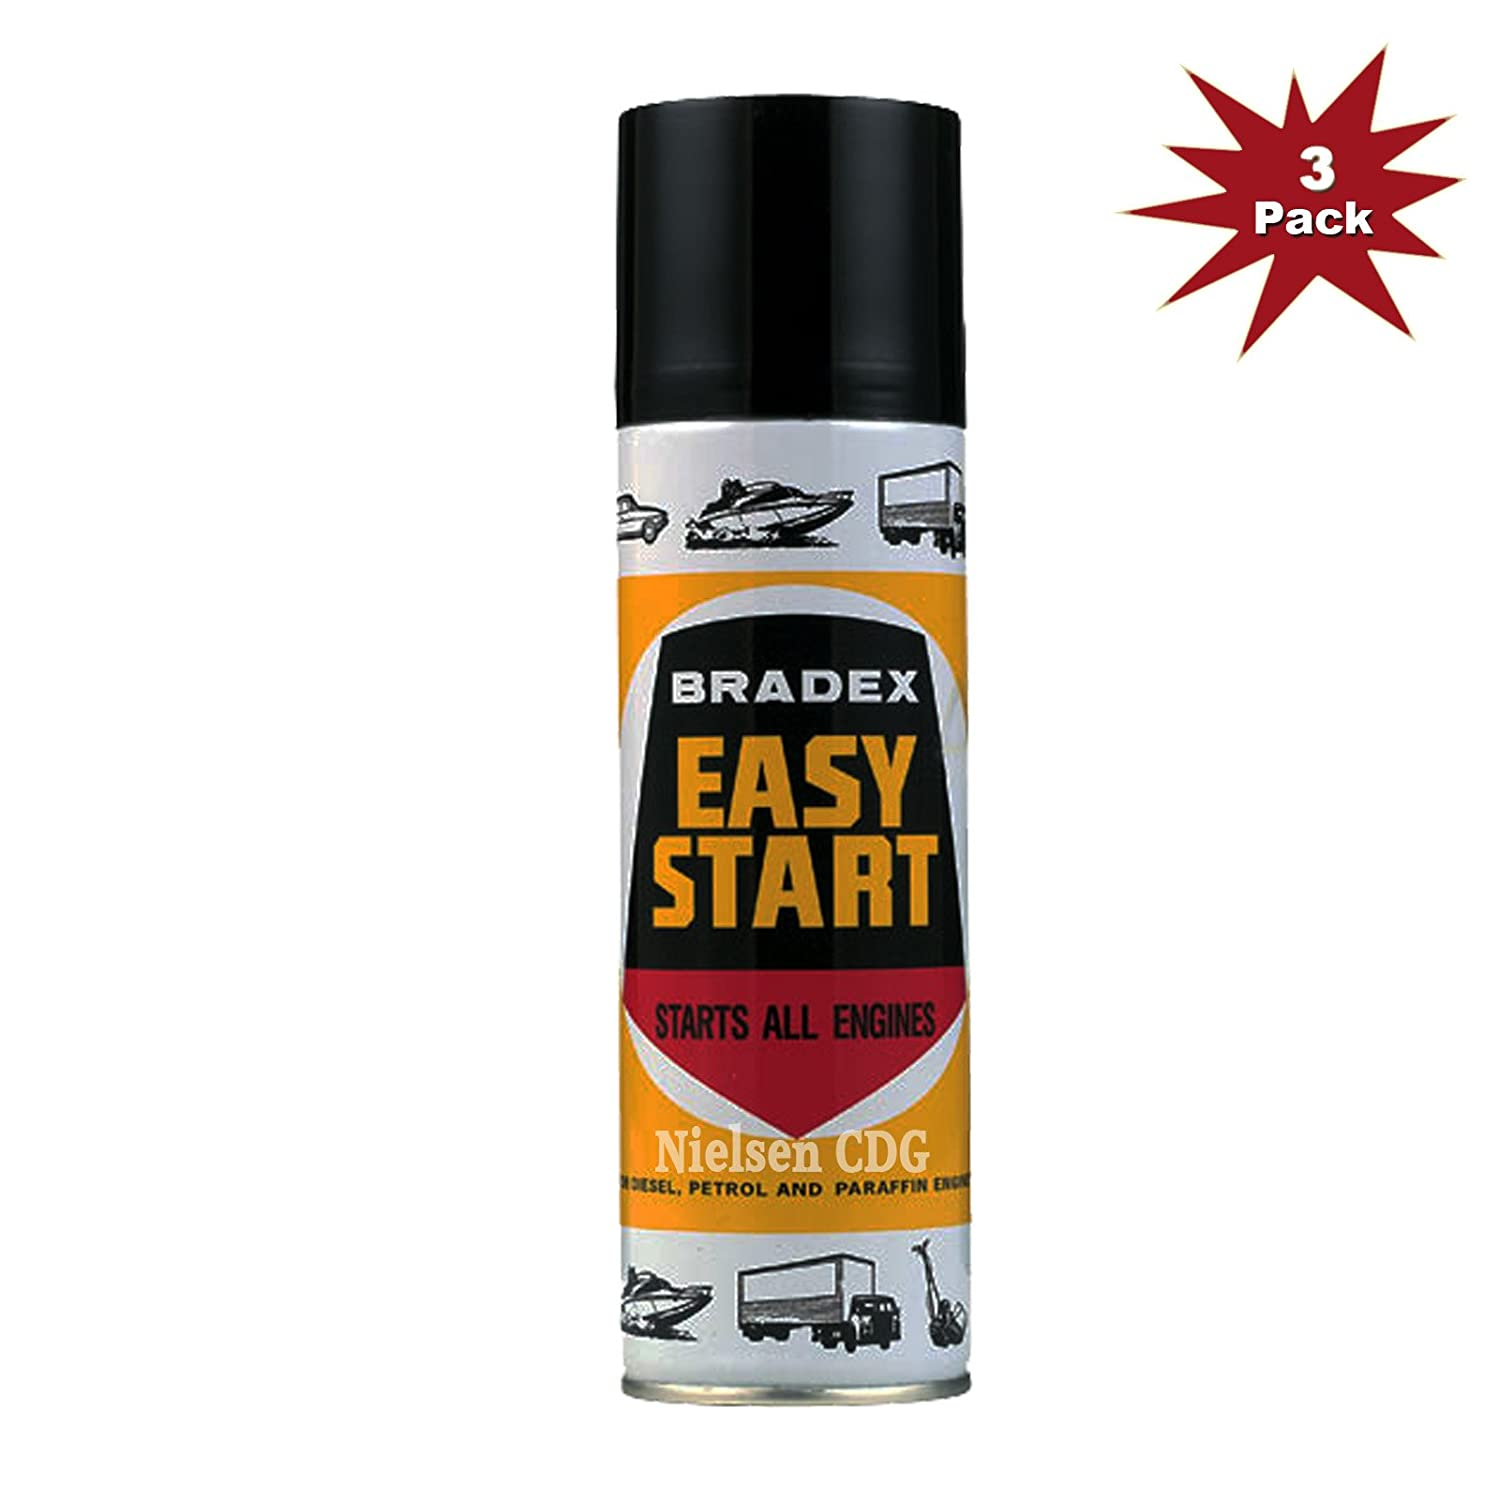 Bradex Easy Start HOL-BES1A-3 - 3x300ml = 3 Pack Holt LLoyd